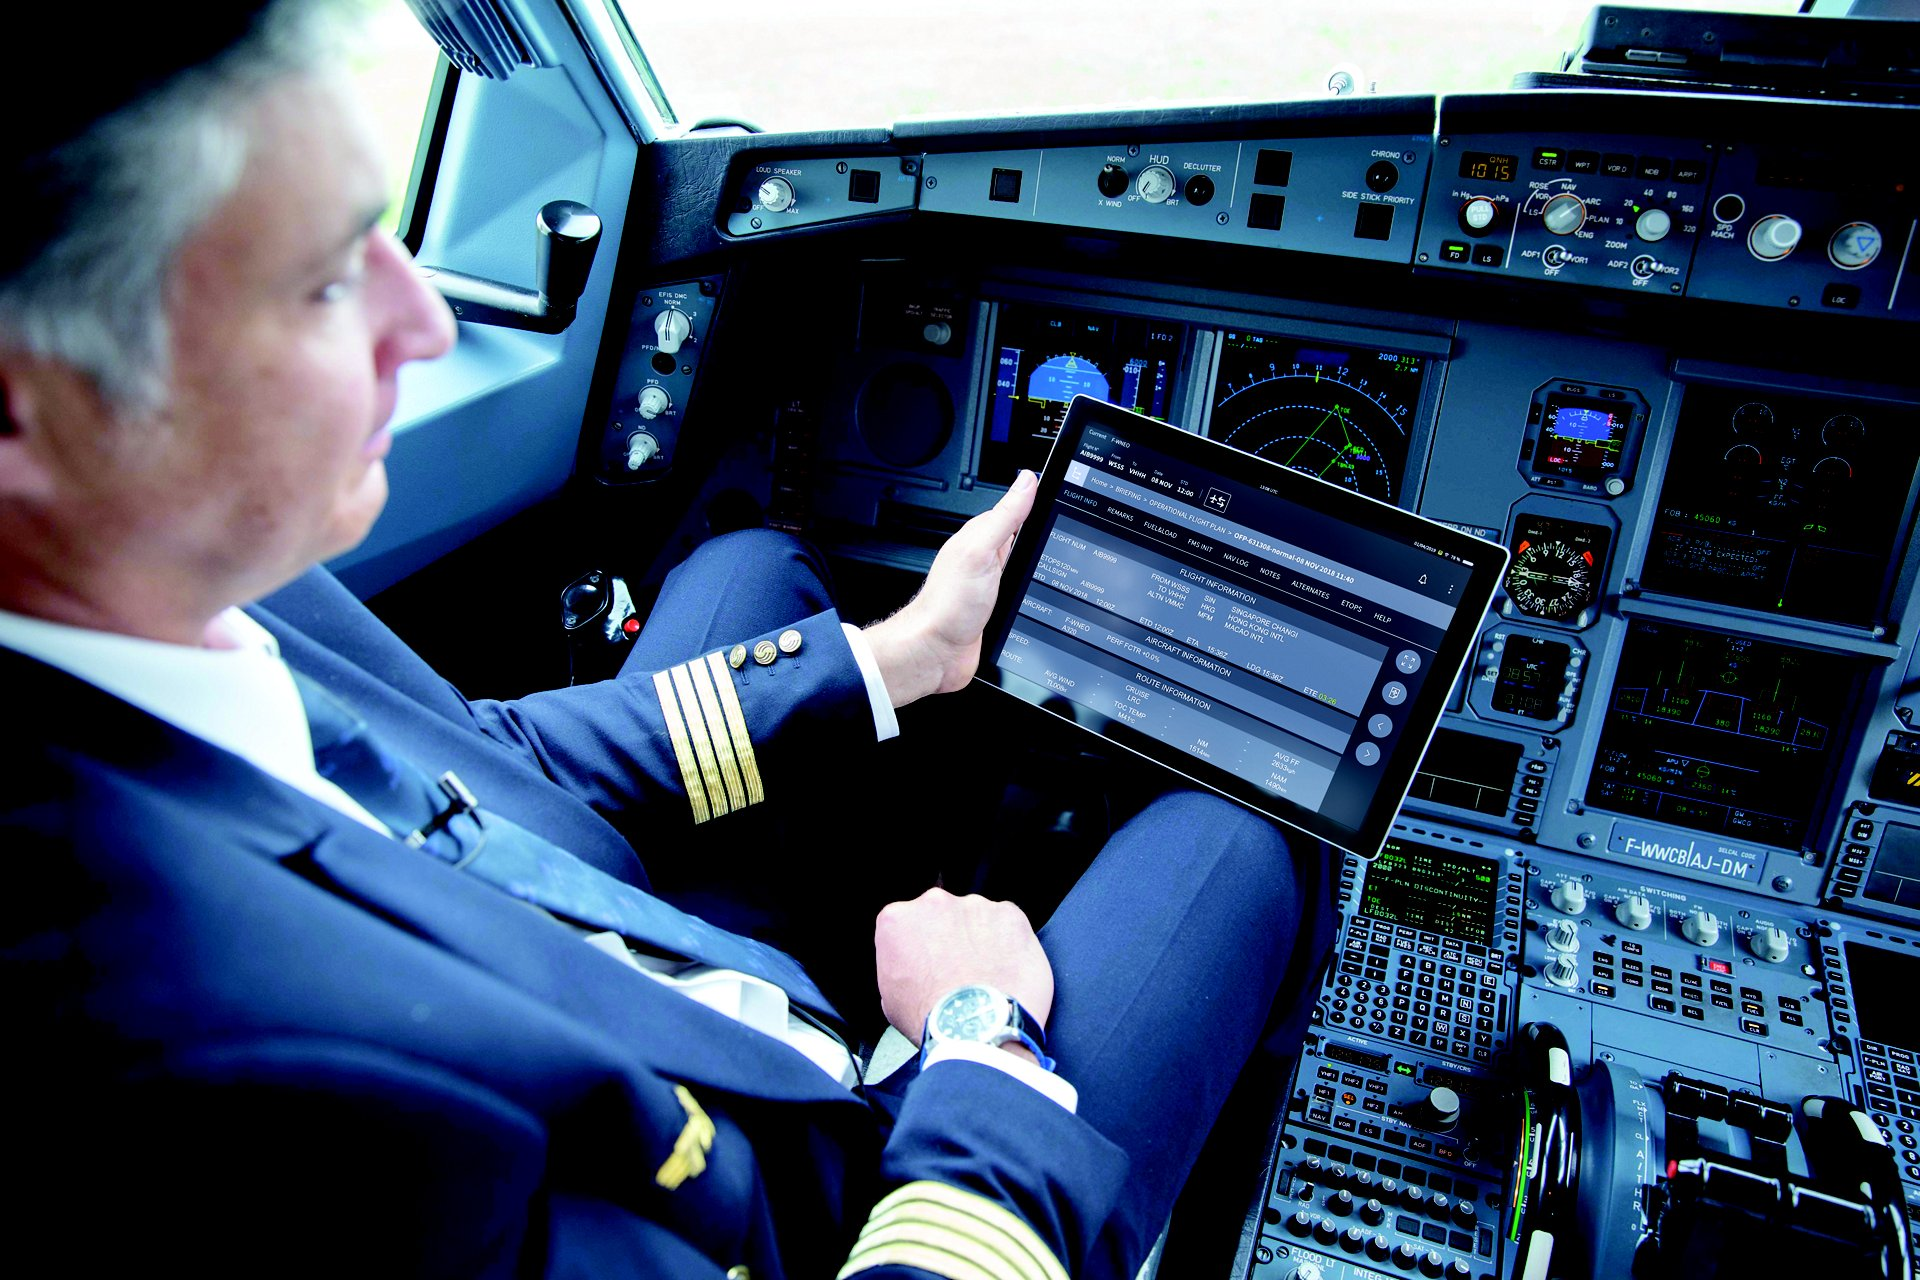 Flight Operations solutions to help you deliver safe, on-time services and increase operational efficiency